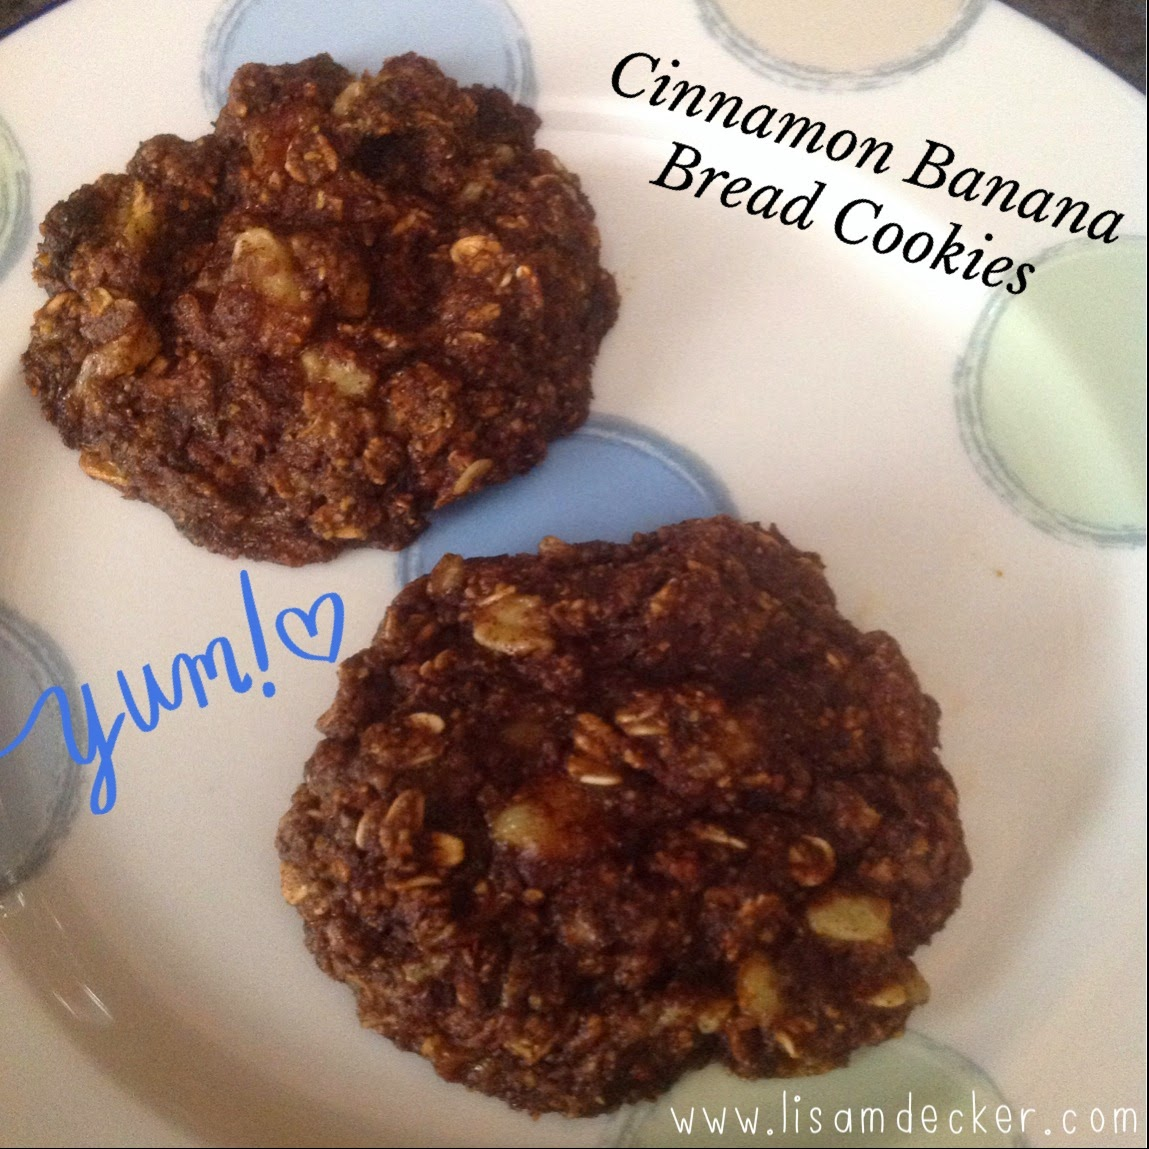 Healthy Cookies, Healthy Dessert, Banana Bread Cookies, Cinnamon Banana Bread Cookies